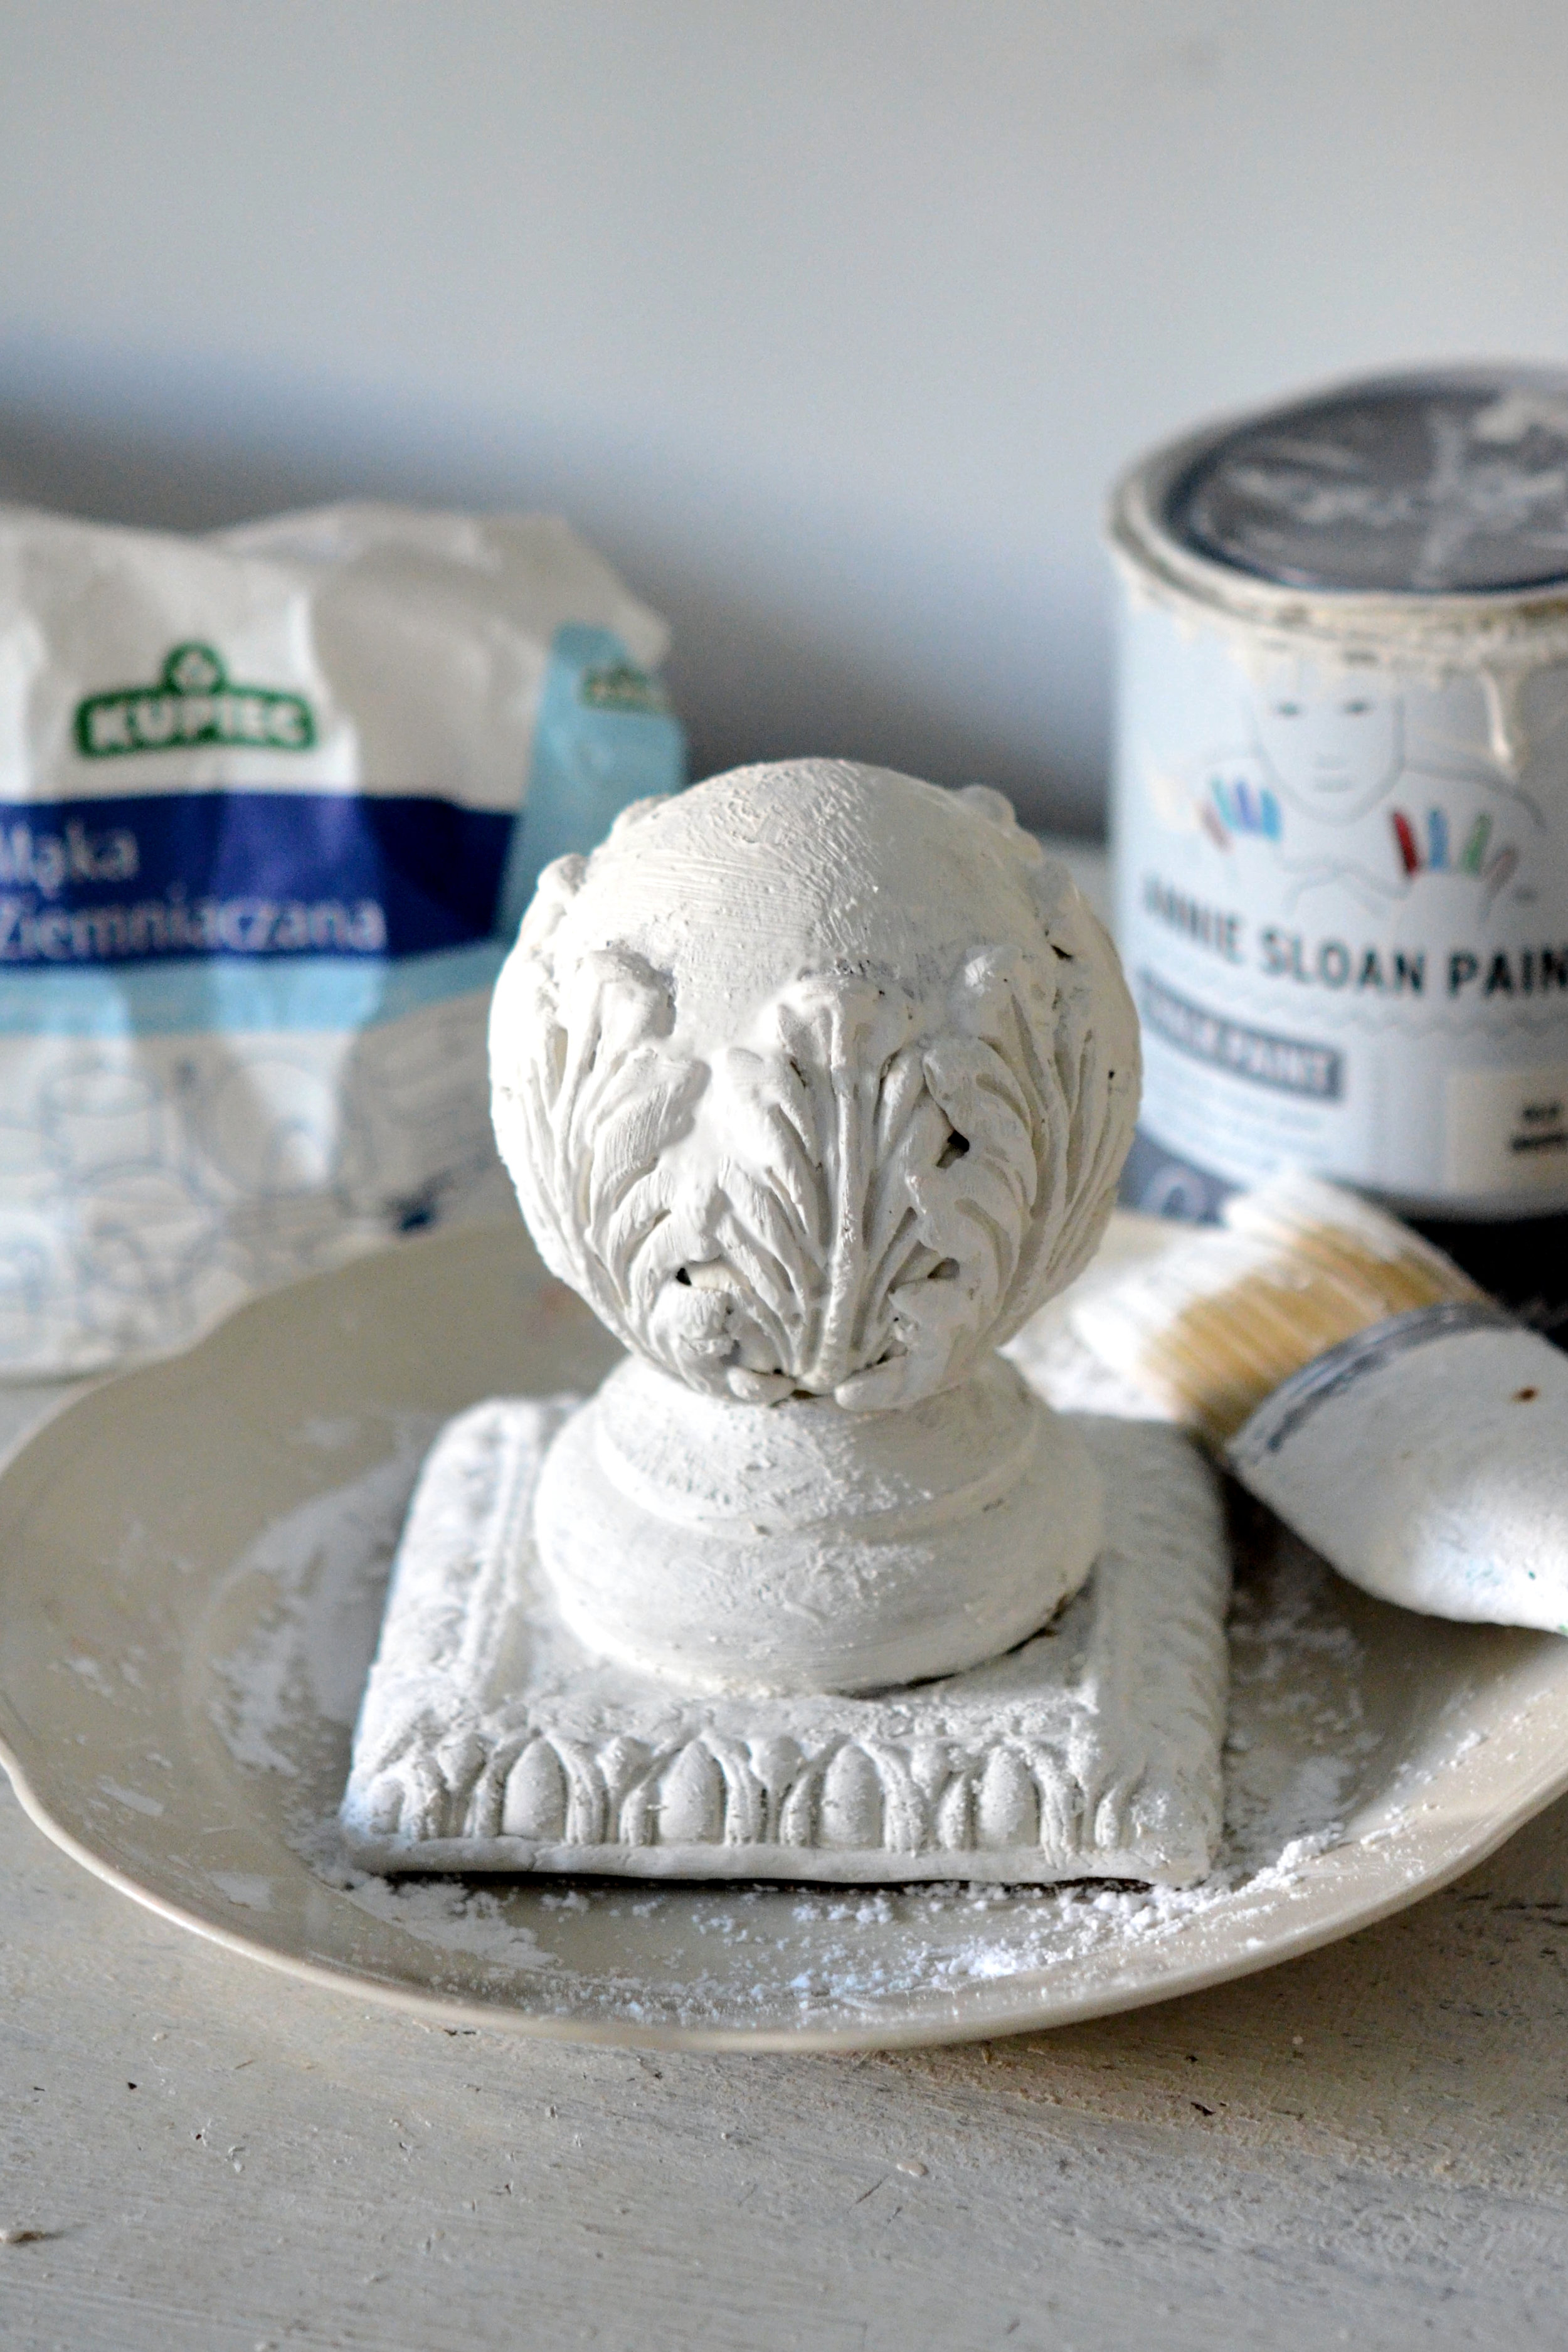 The next step is to paint the pieces with Annie Sloan old white paint.